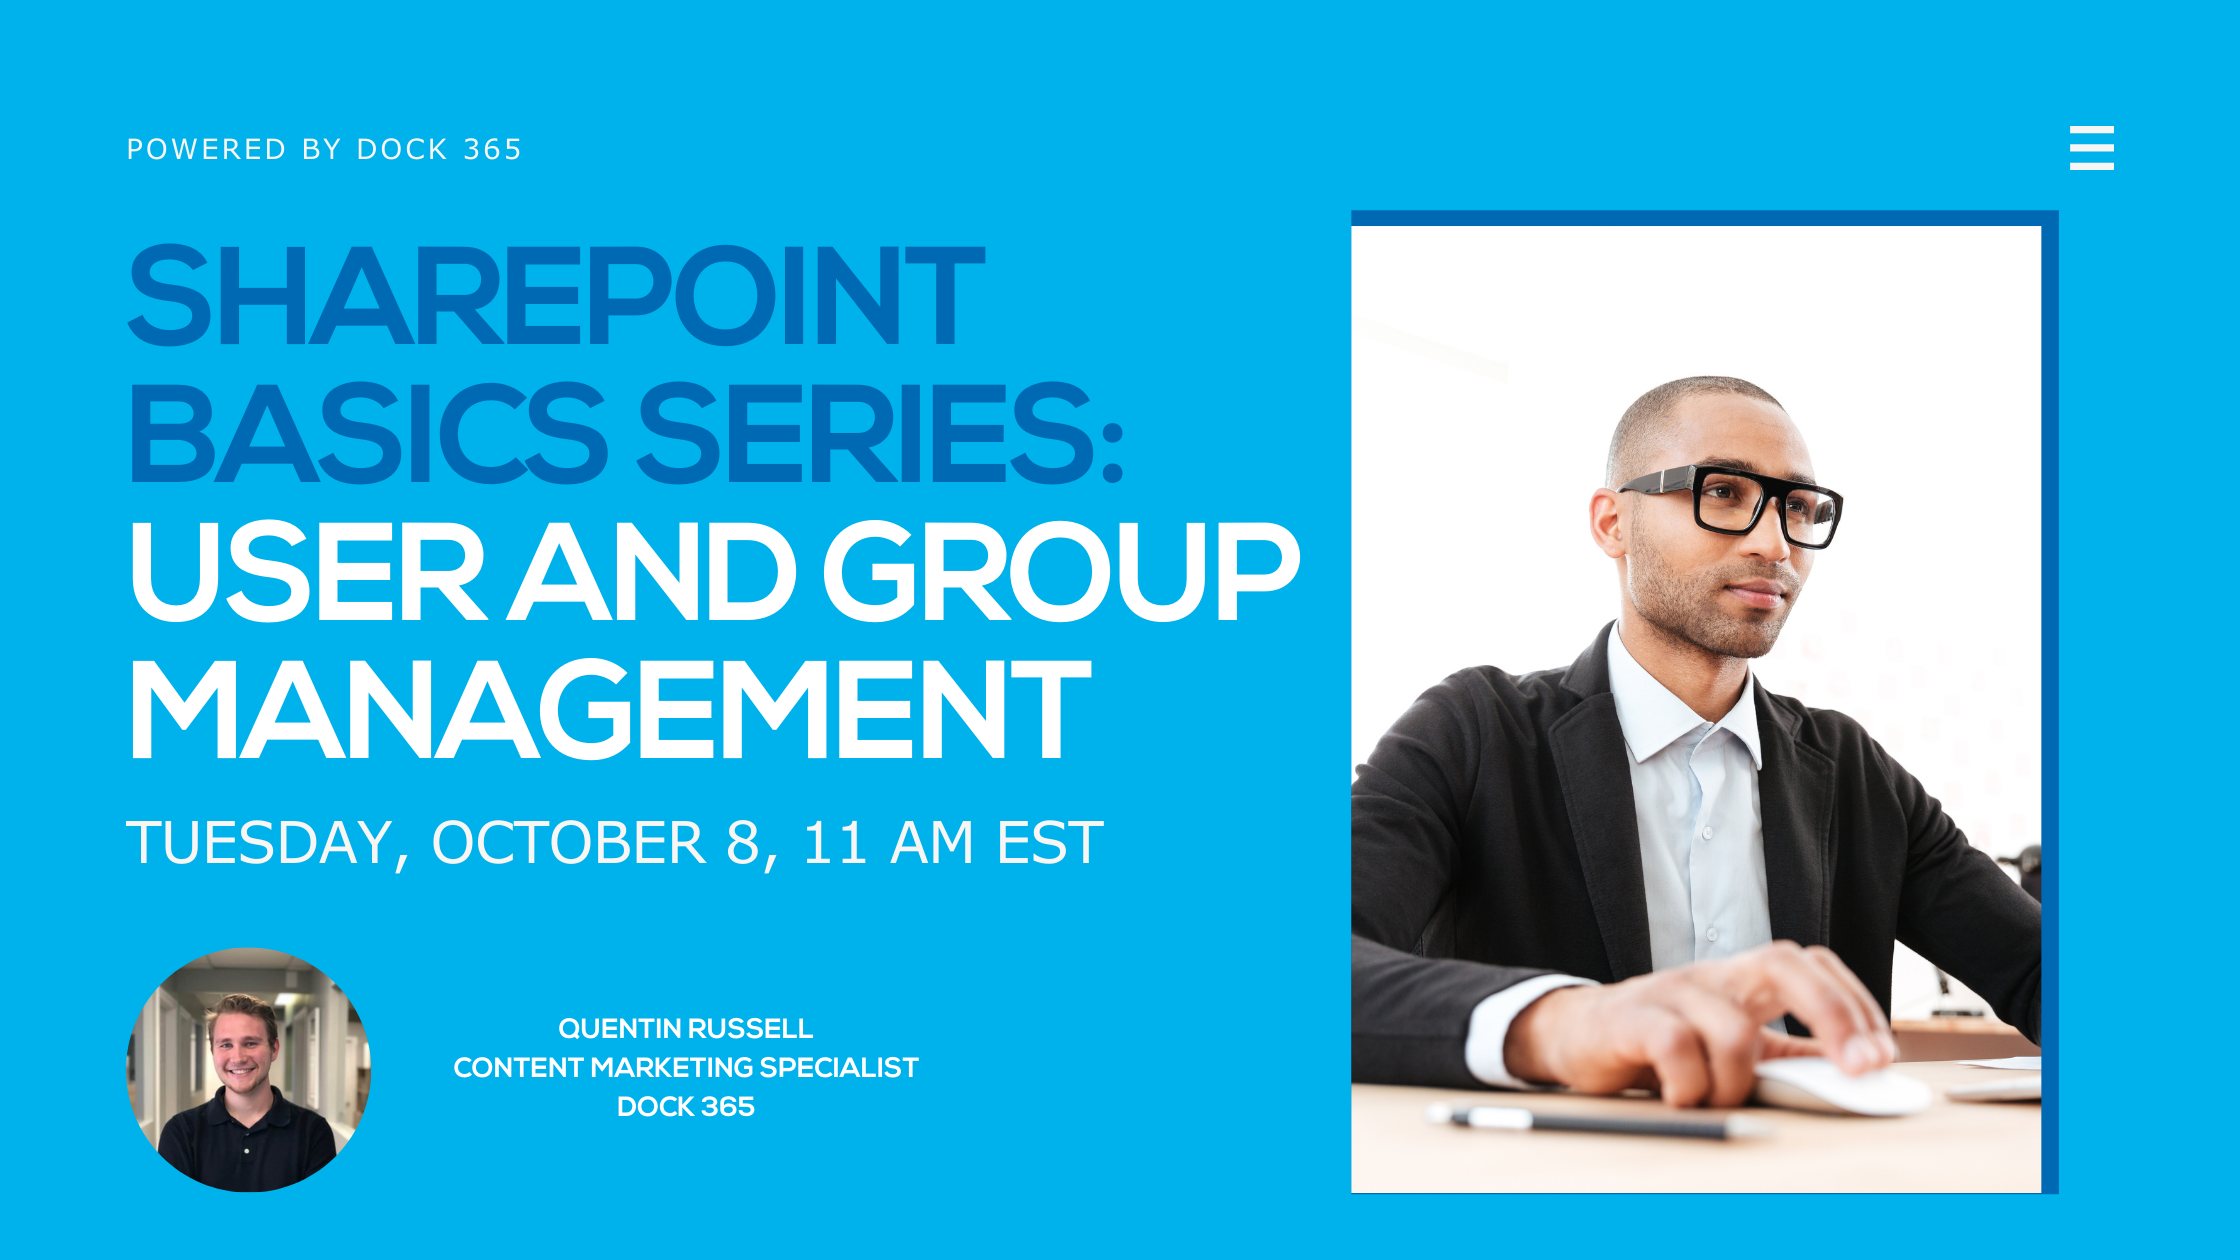 Free SharePoint Webinar - SharePoint Basics Series: User and Group Management